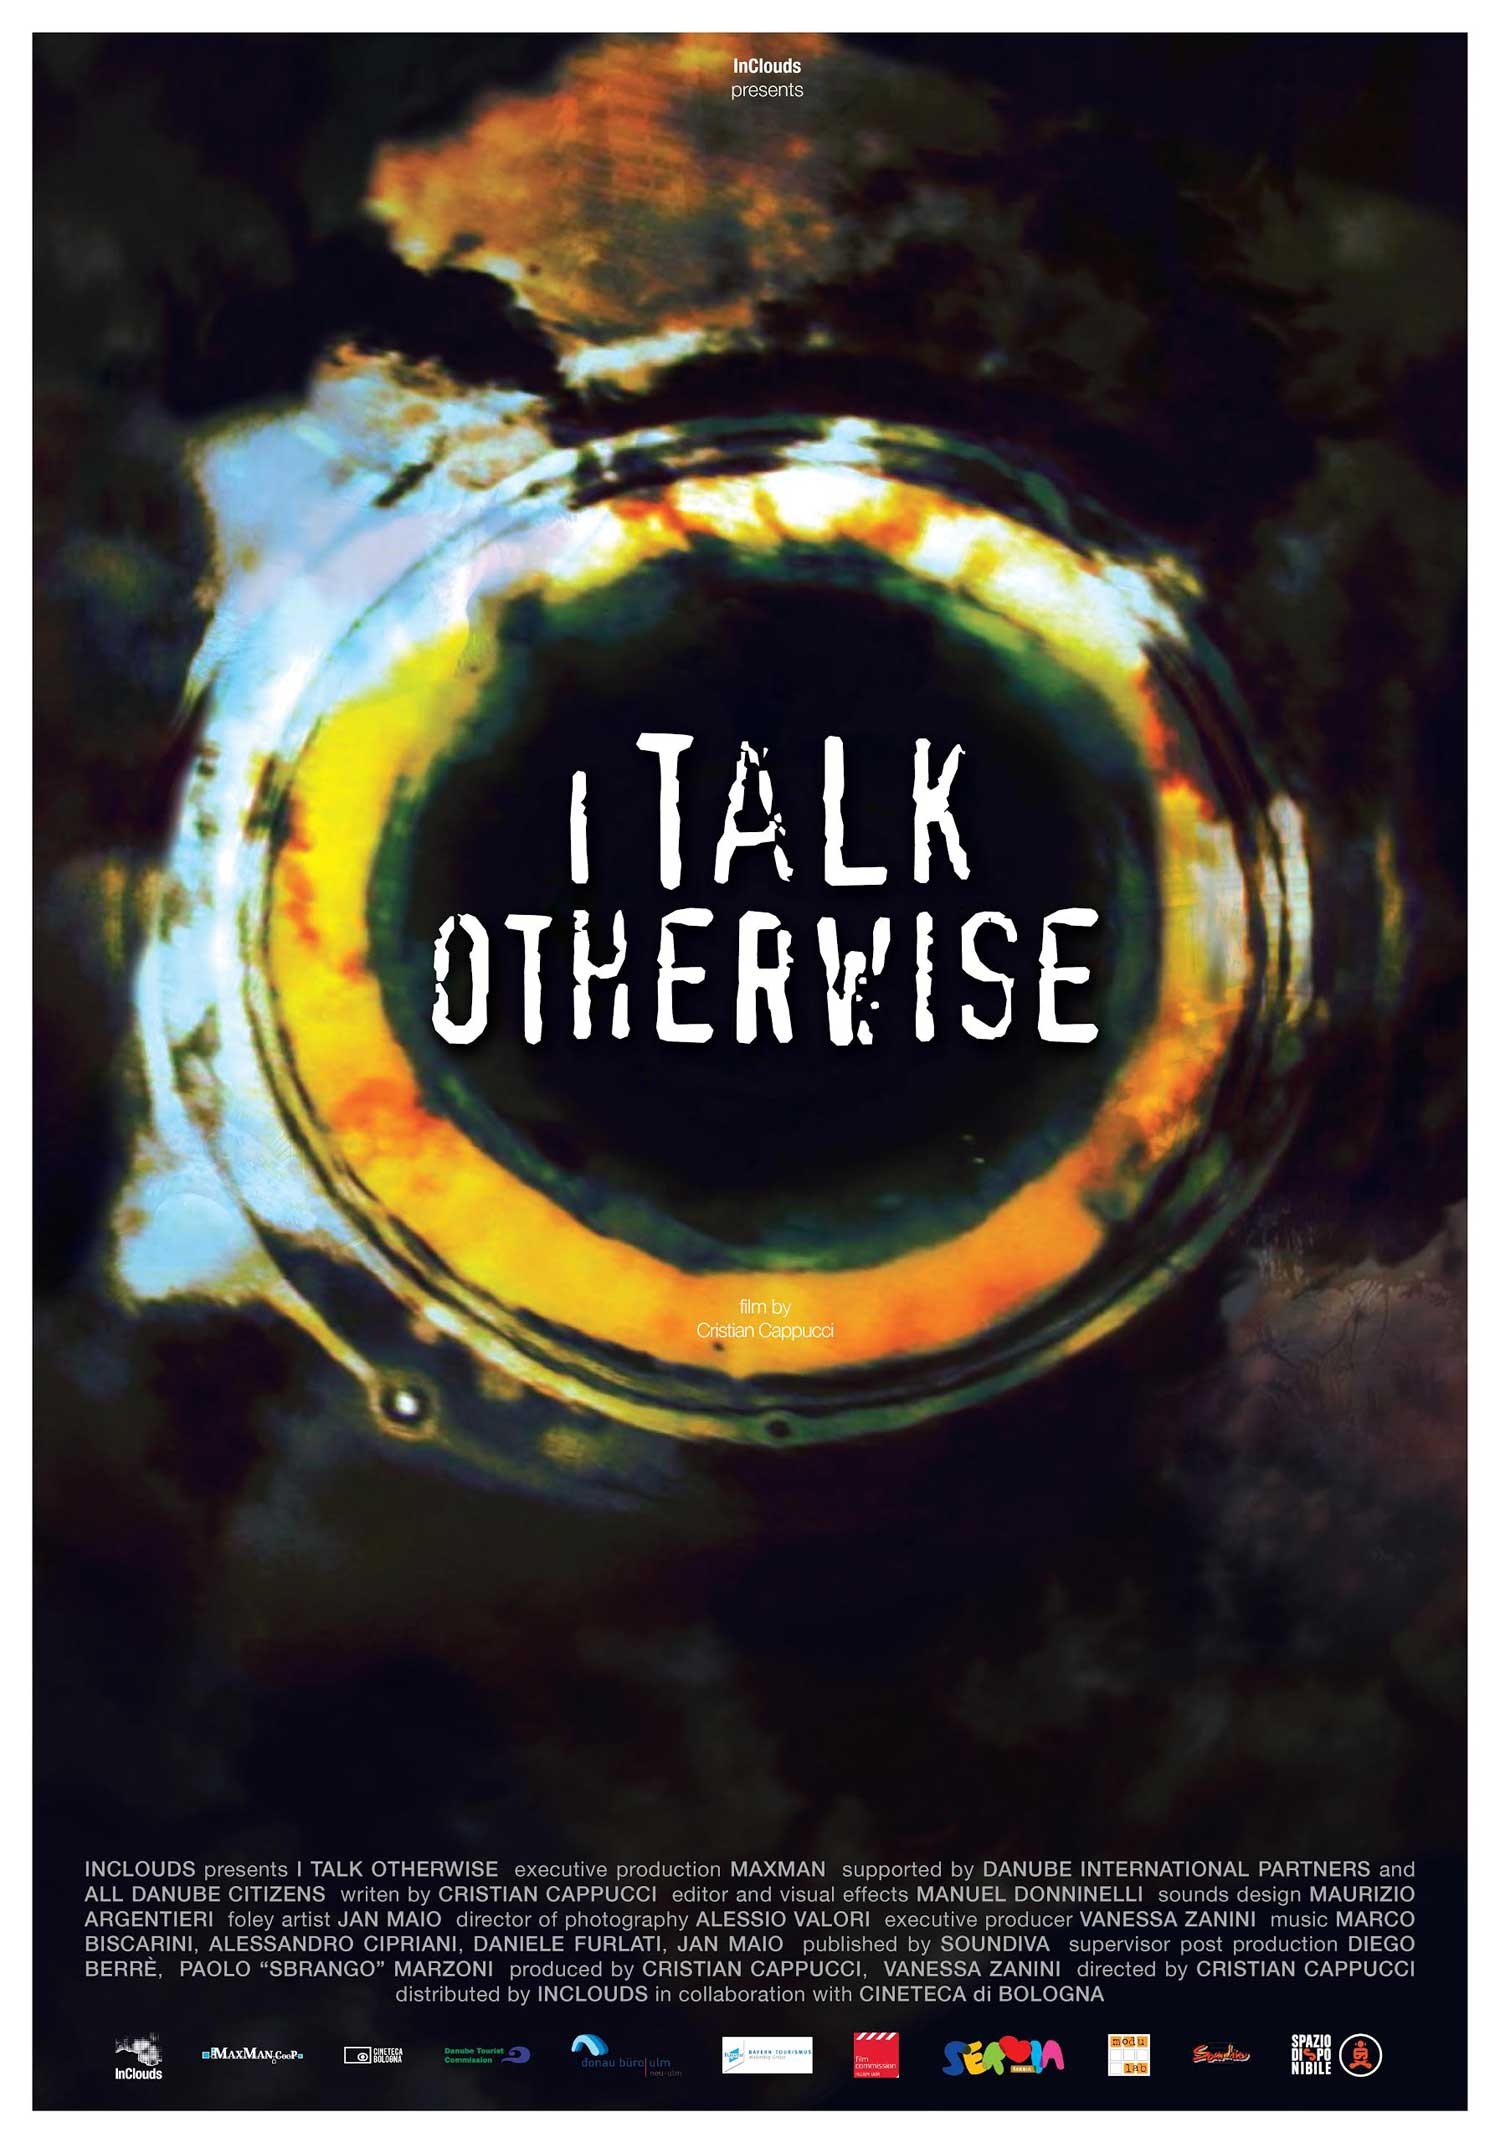 I TALK OTHERWISE - VIAGGIO SUL DANUBIO (CD+LIBRO+DVD) (DVD)